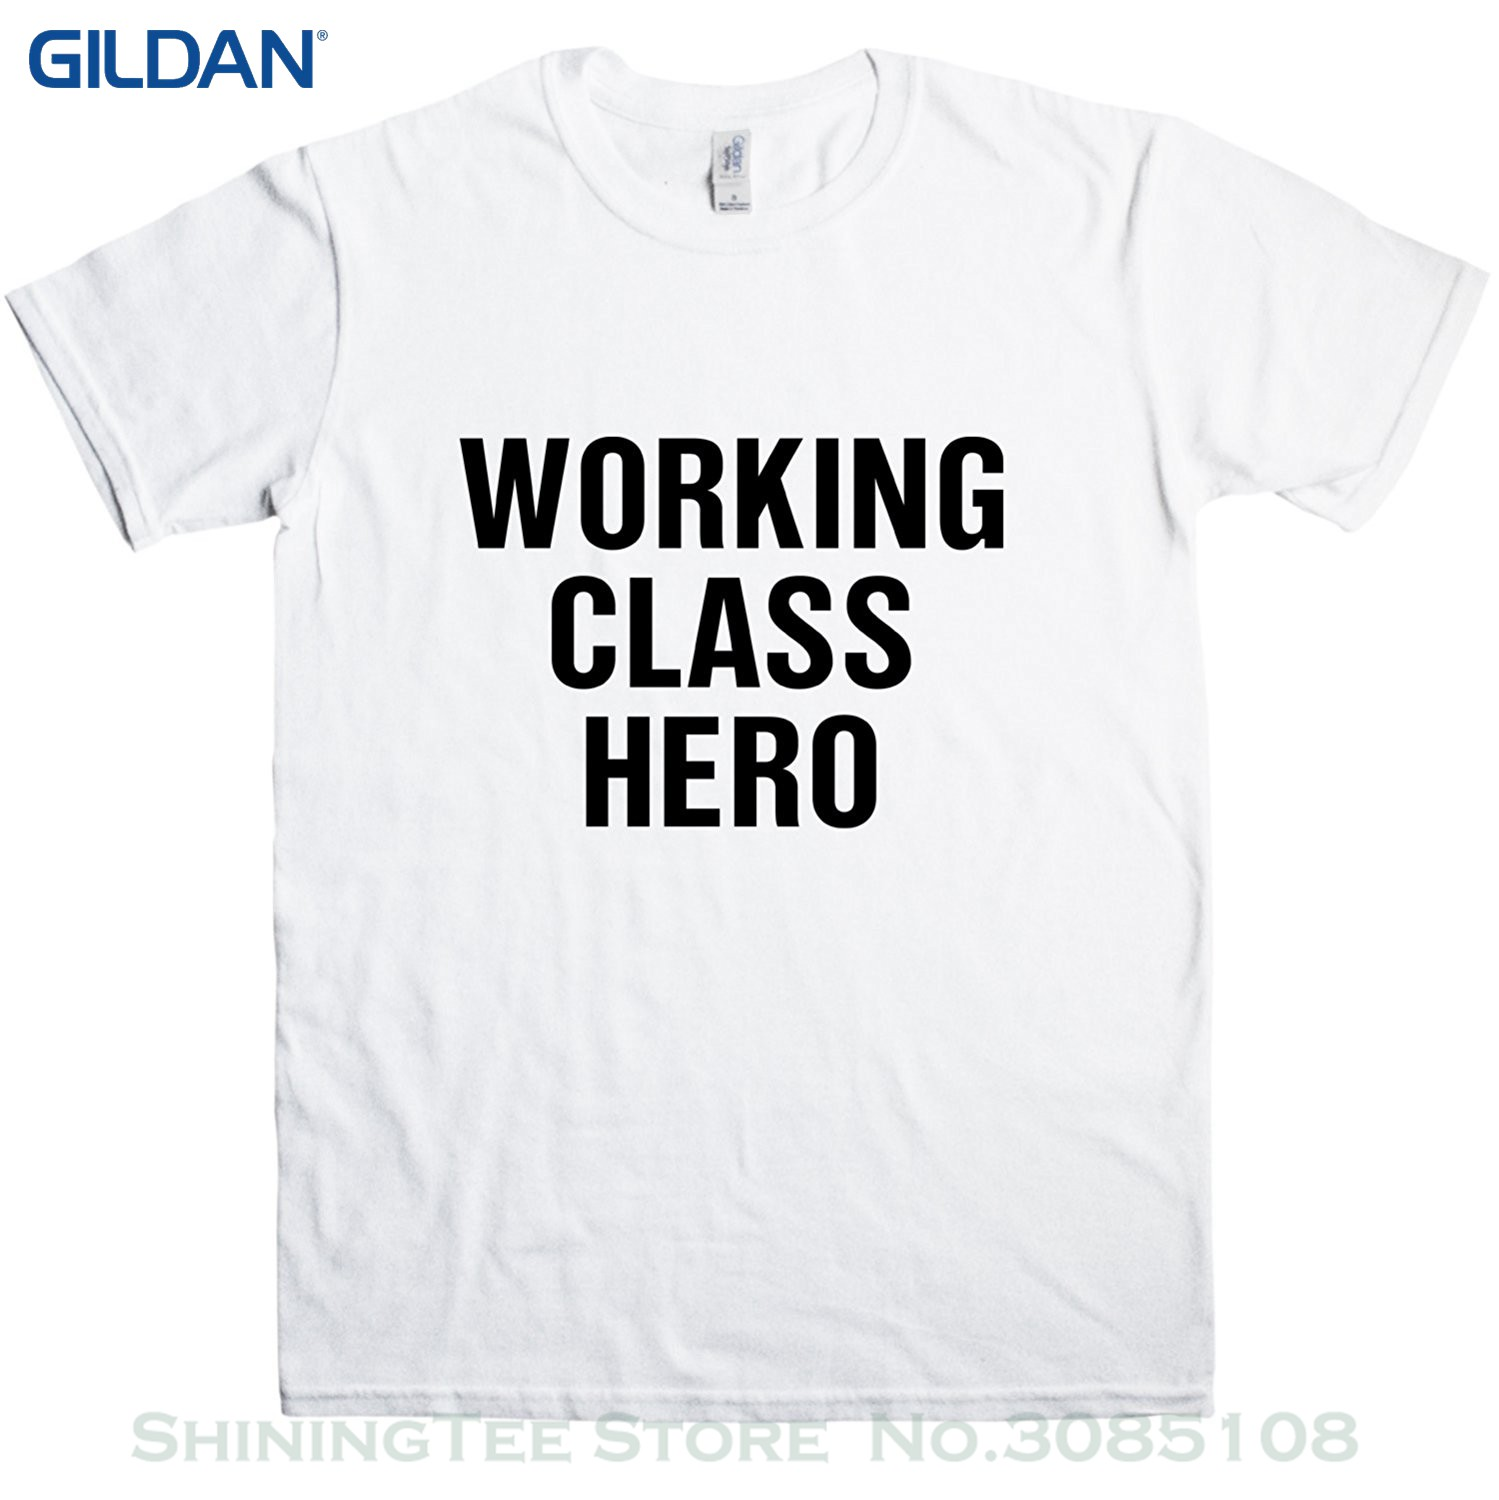 GILDAN New Fashion T Shirt Graphic Letter Mens T Shirt - Working Class Hero Tee - 8ball  ...